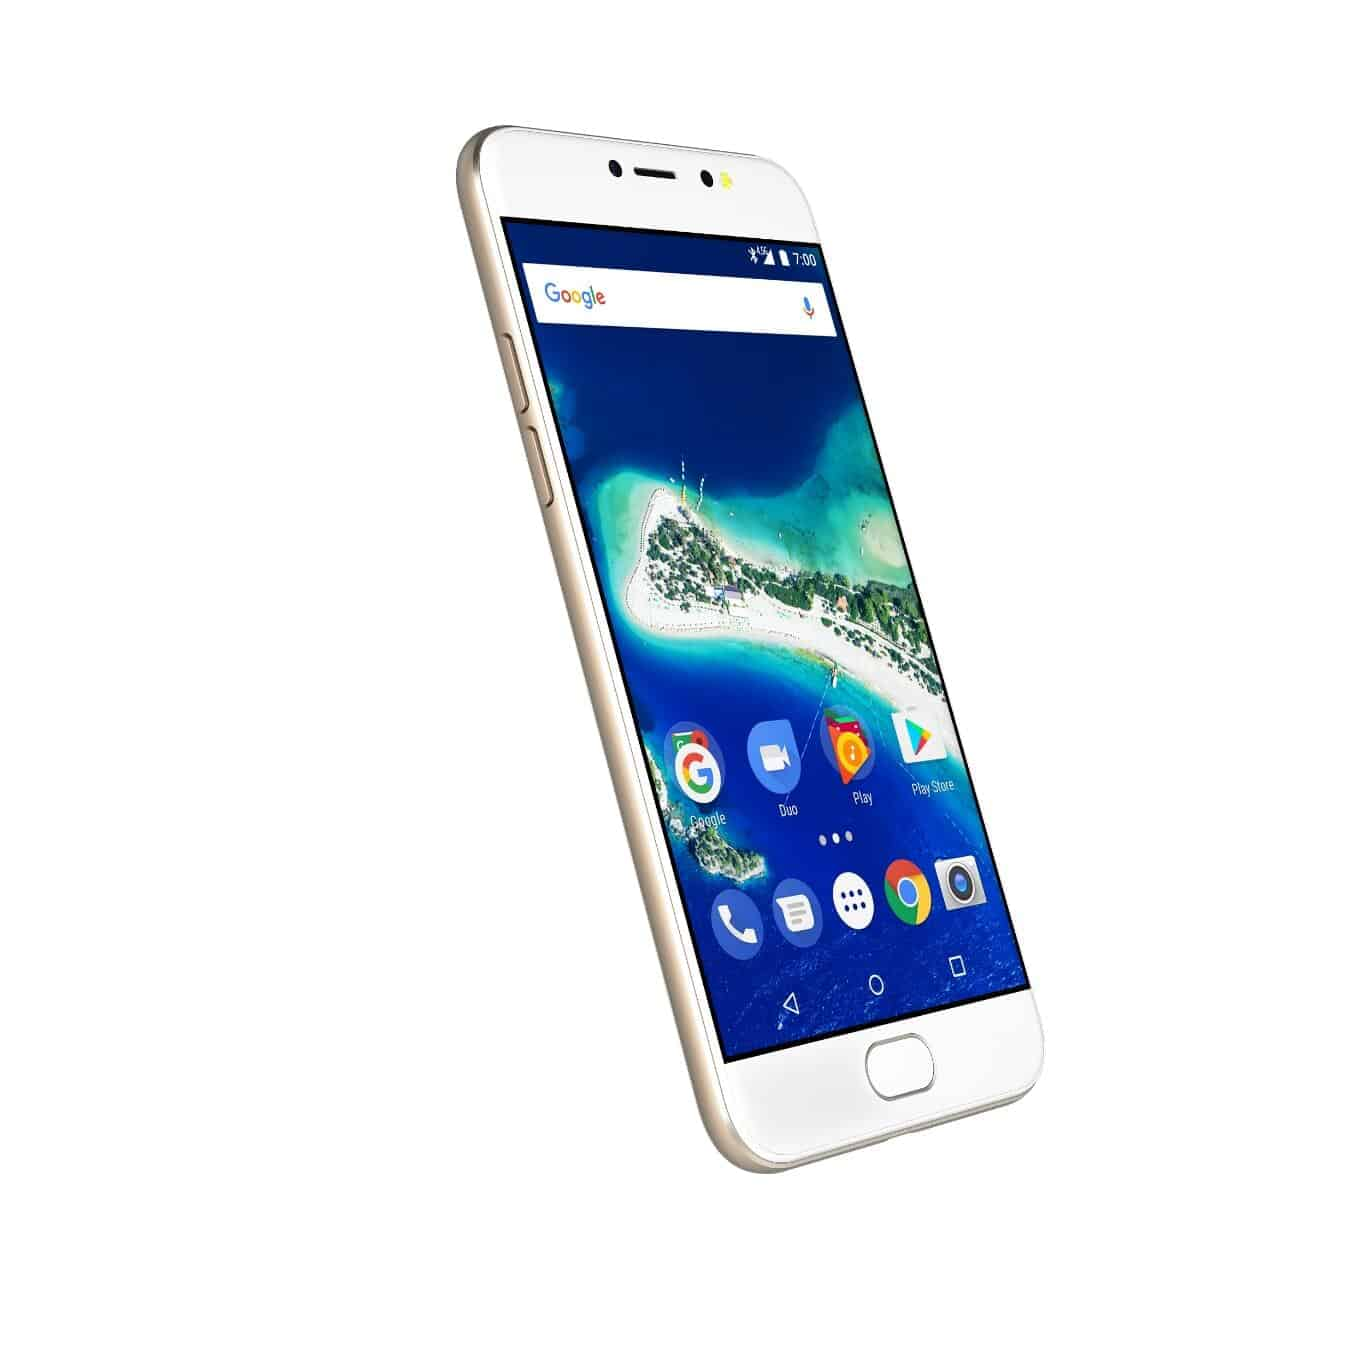 GM 6 Android One 15